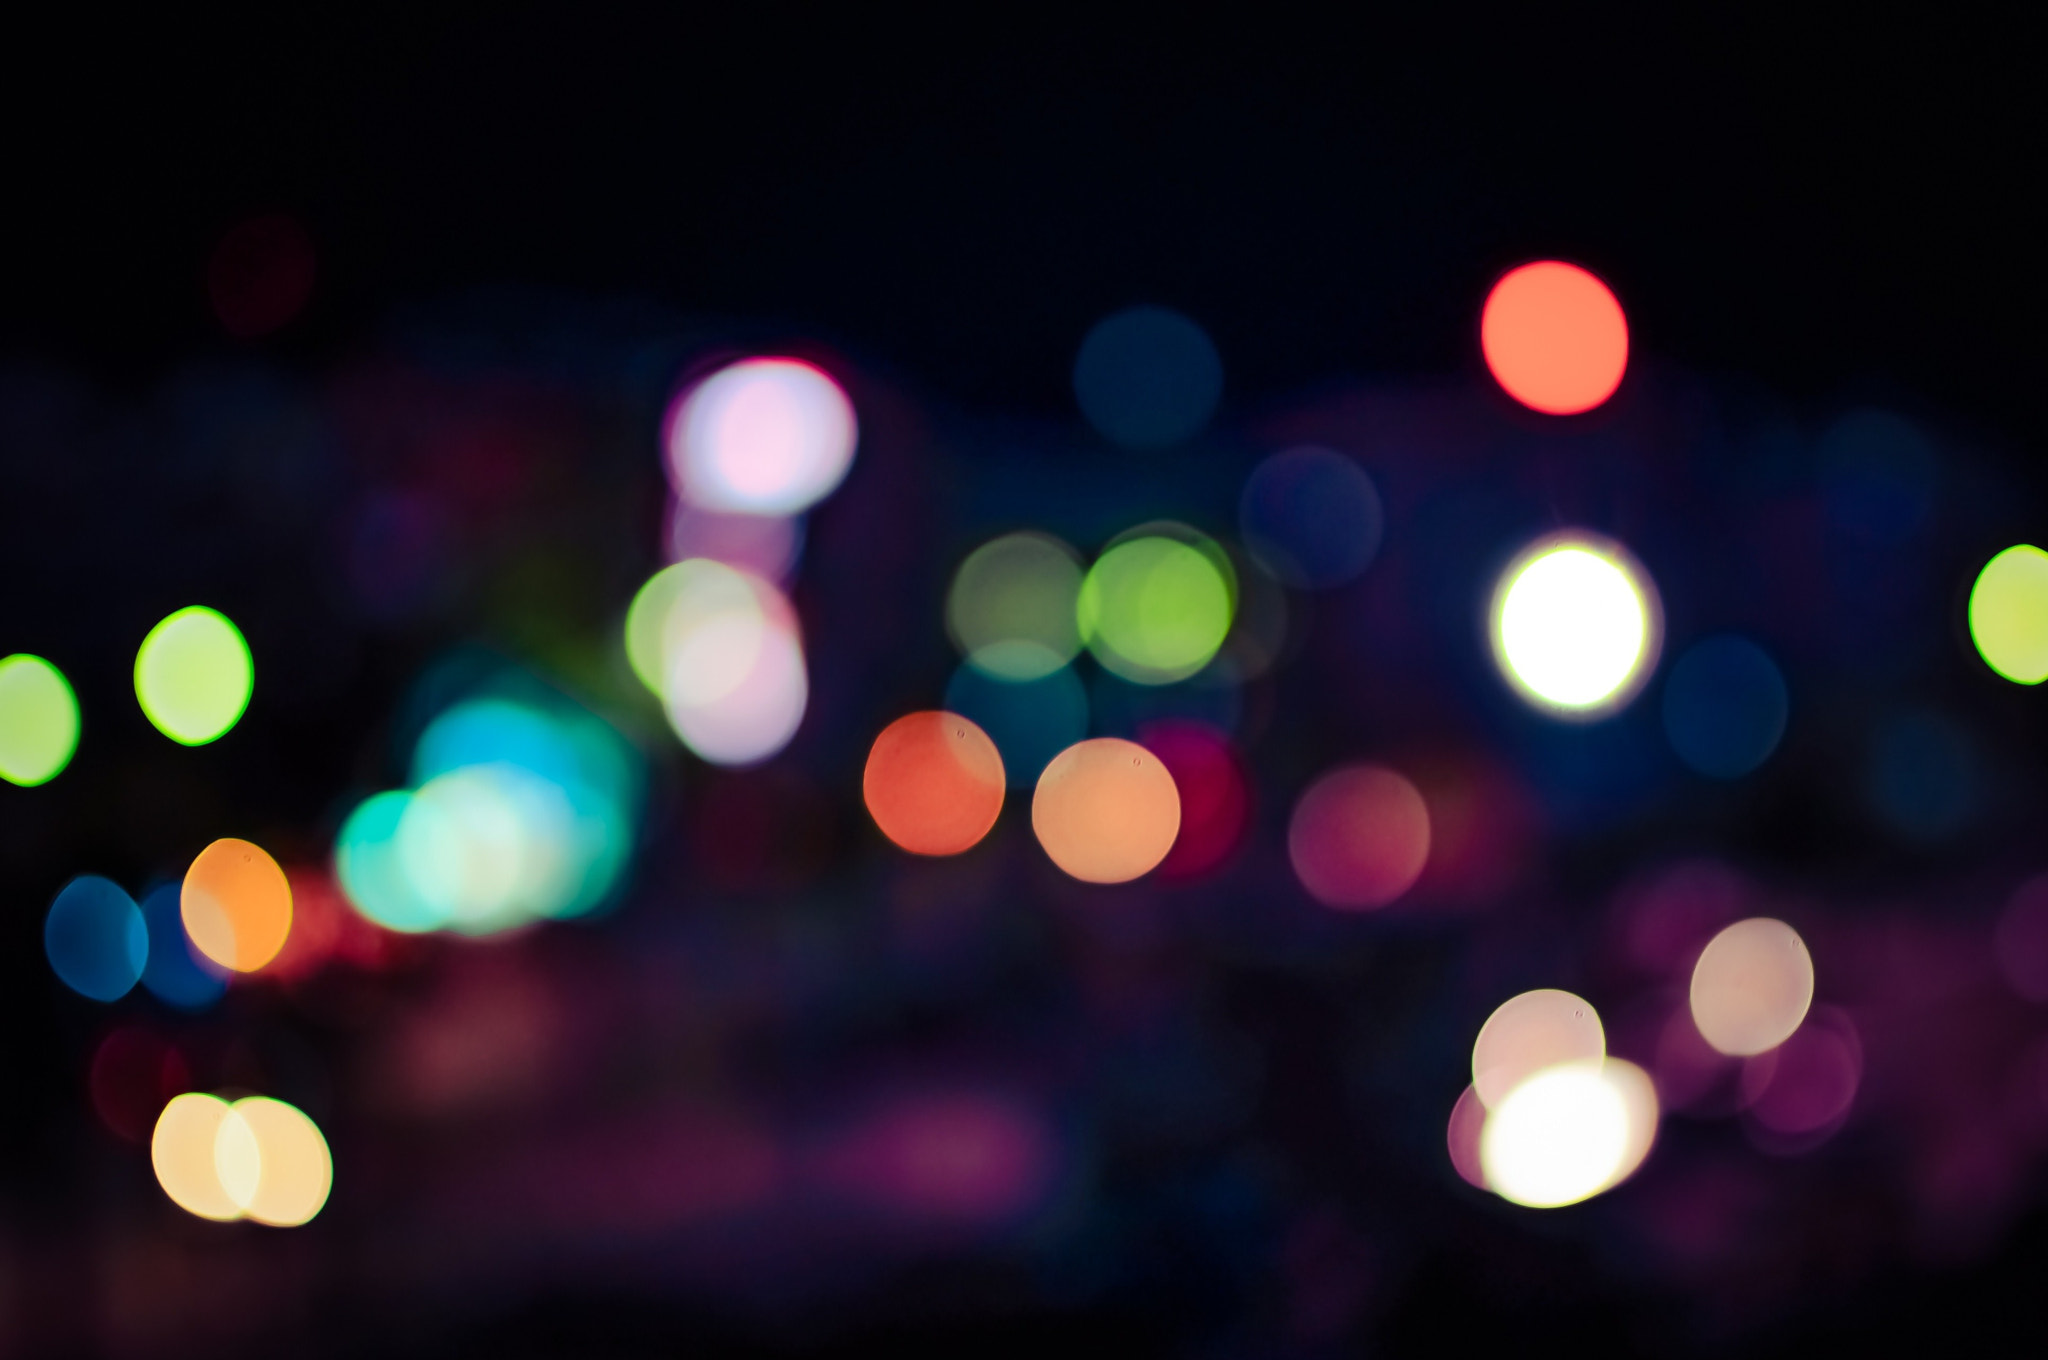 Photograph Bokeh by Naphat Sripated on 500px